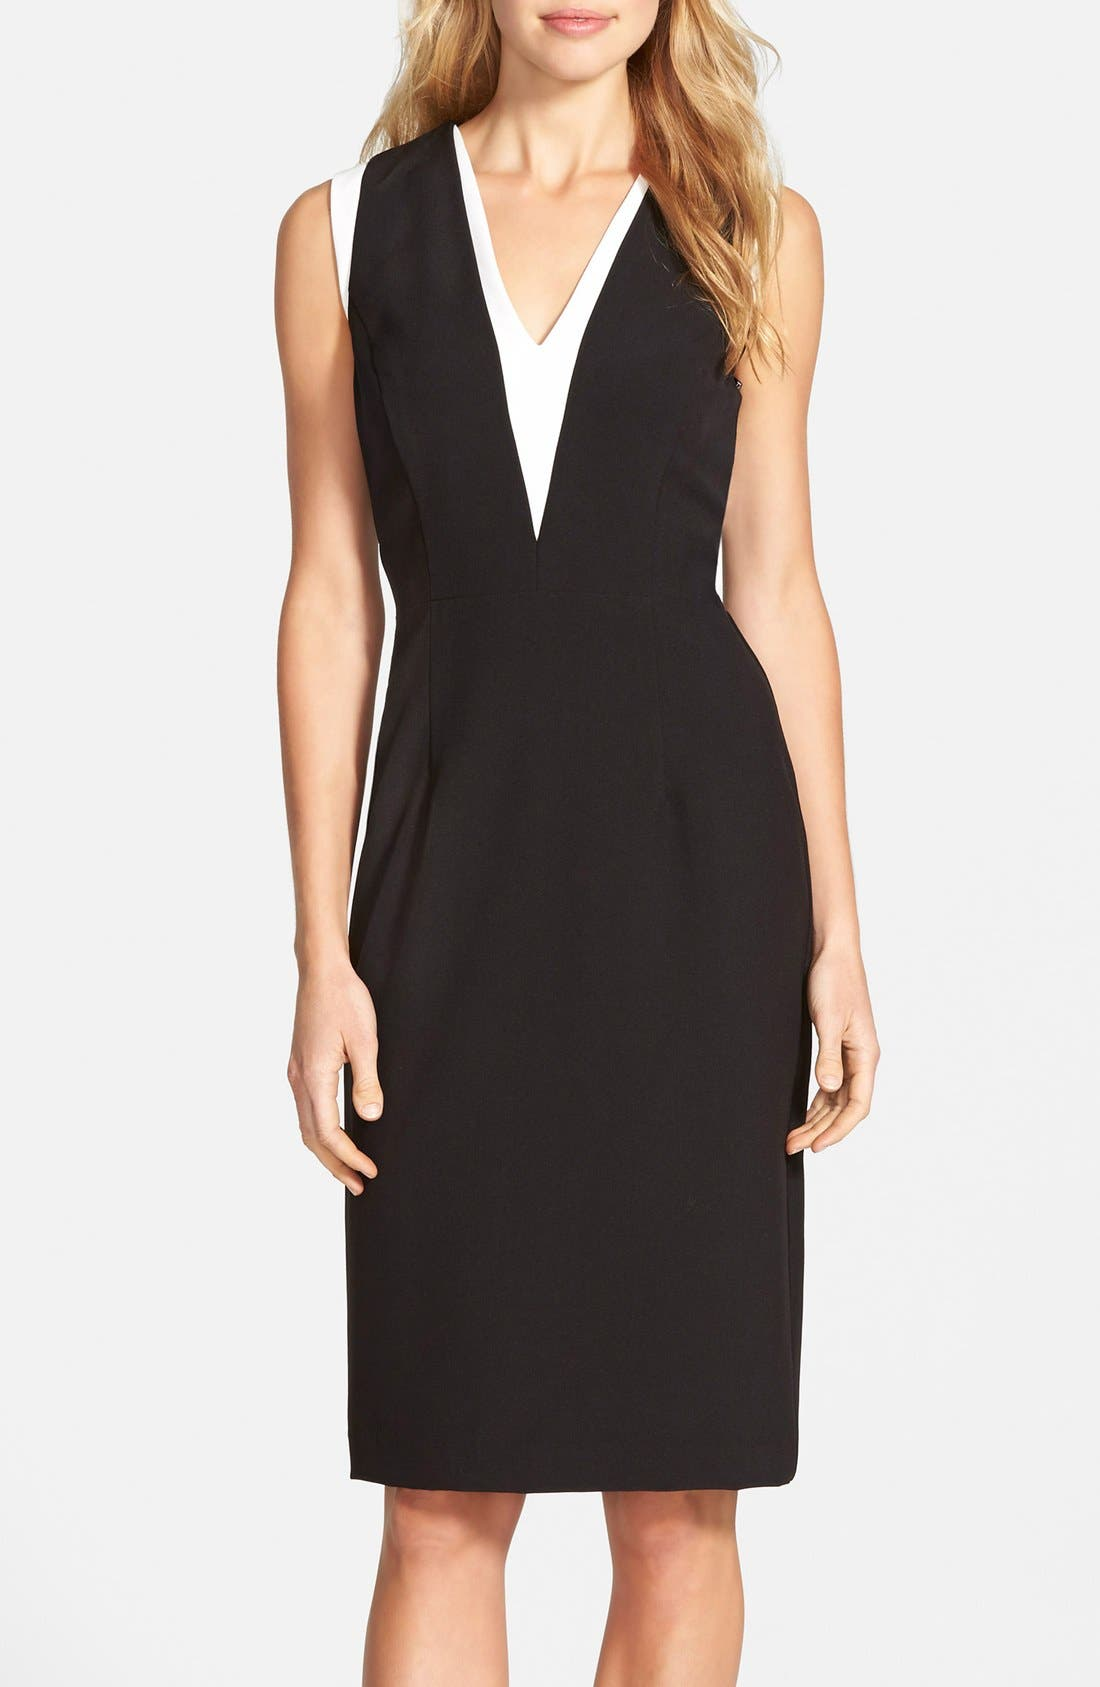 Alternate Image 1 Selected - Vince Camuto Colorblock Stretch Sheath Dress